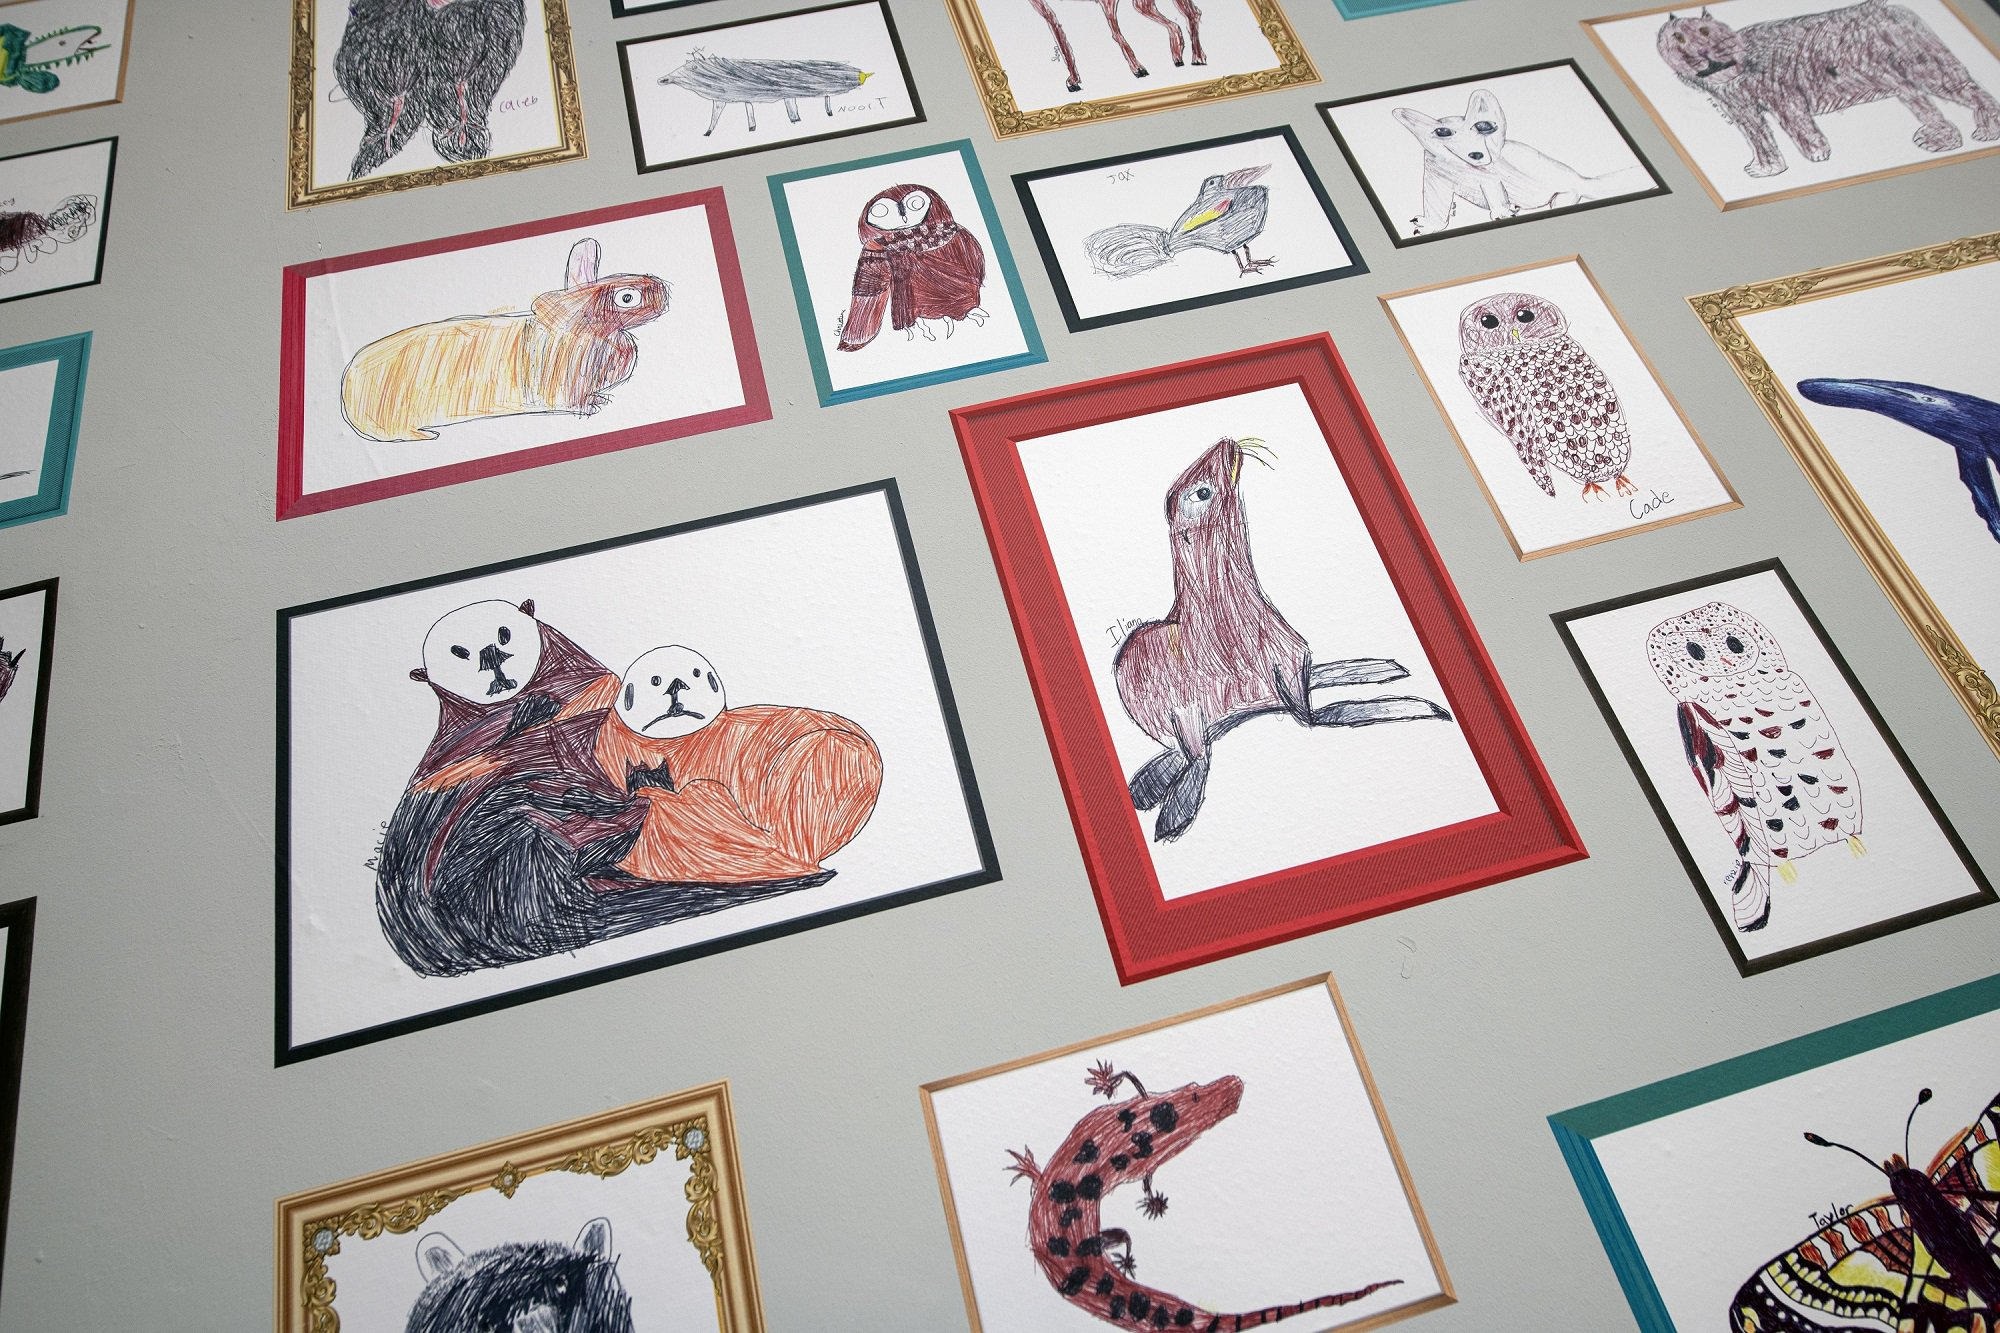 Various children's biro drawings of animals shown in frames.